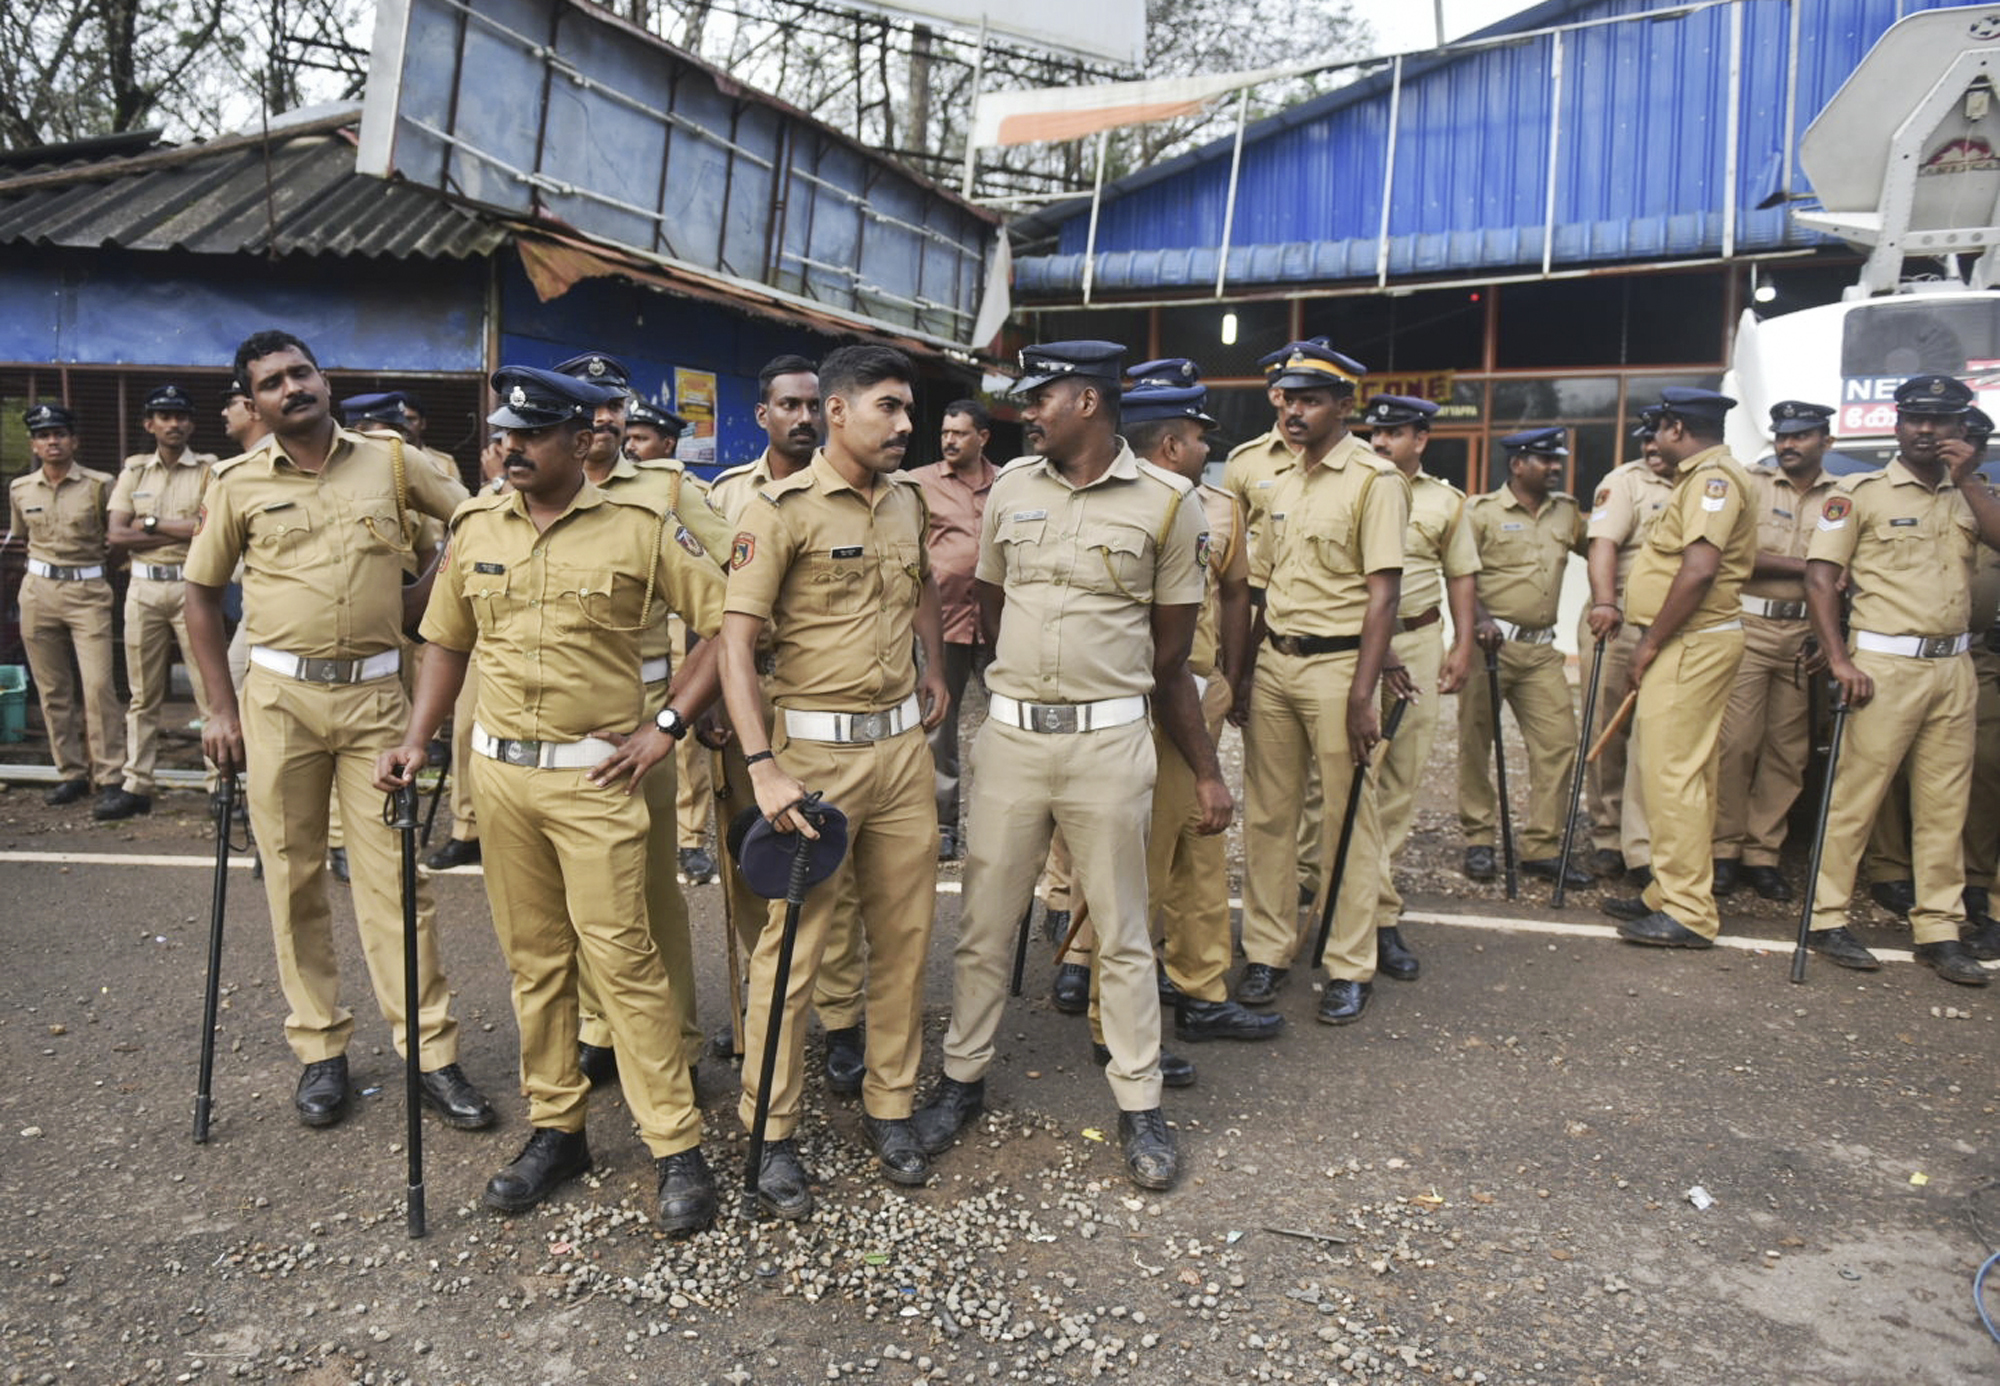 ndian policemen are deployed to guard against protestors who are opposed to allowing women of menstruating age from entering the Sabarimala temple at Nilackal, a base camp on way to the mountain shrine in Kerala - AP